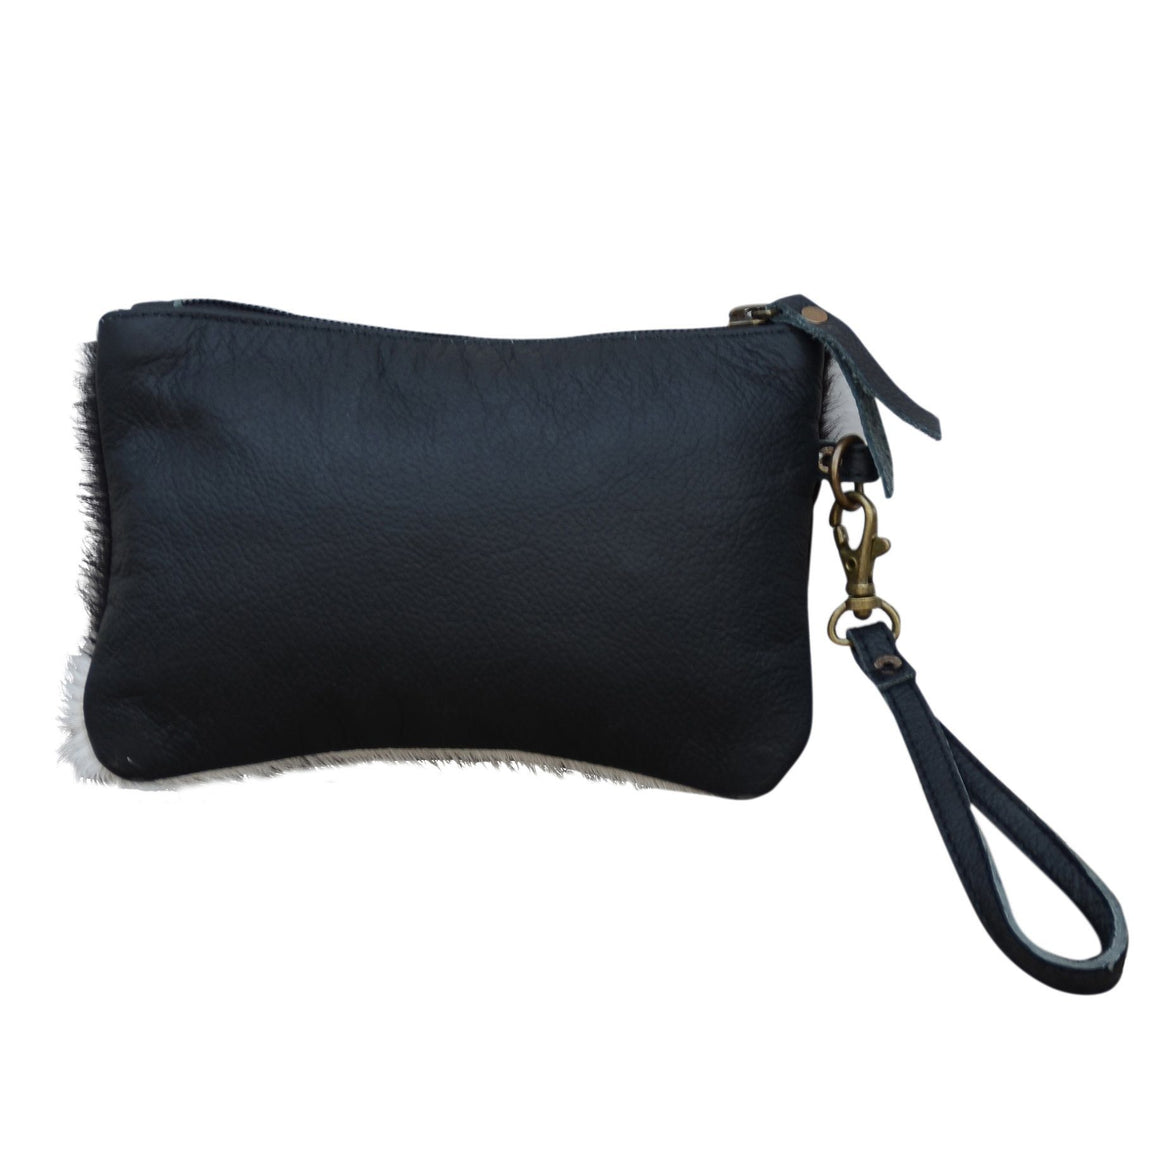 MINI EVERYDAY COWHIDE ZIP CLUTCH BAG Philbee Interiors